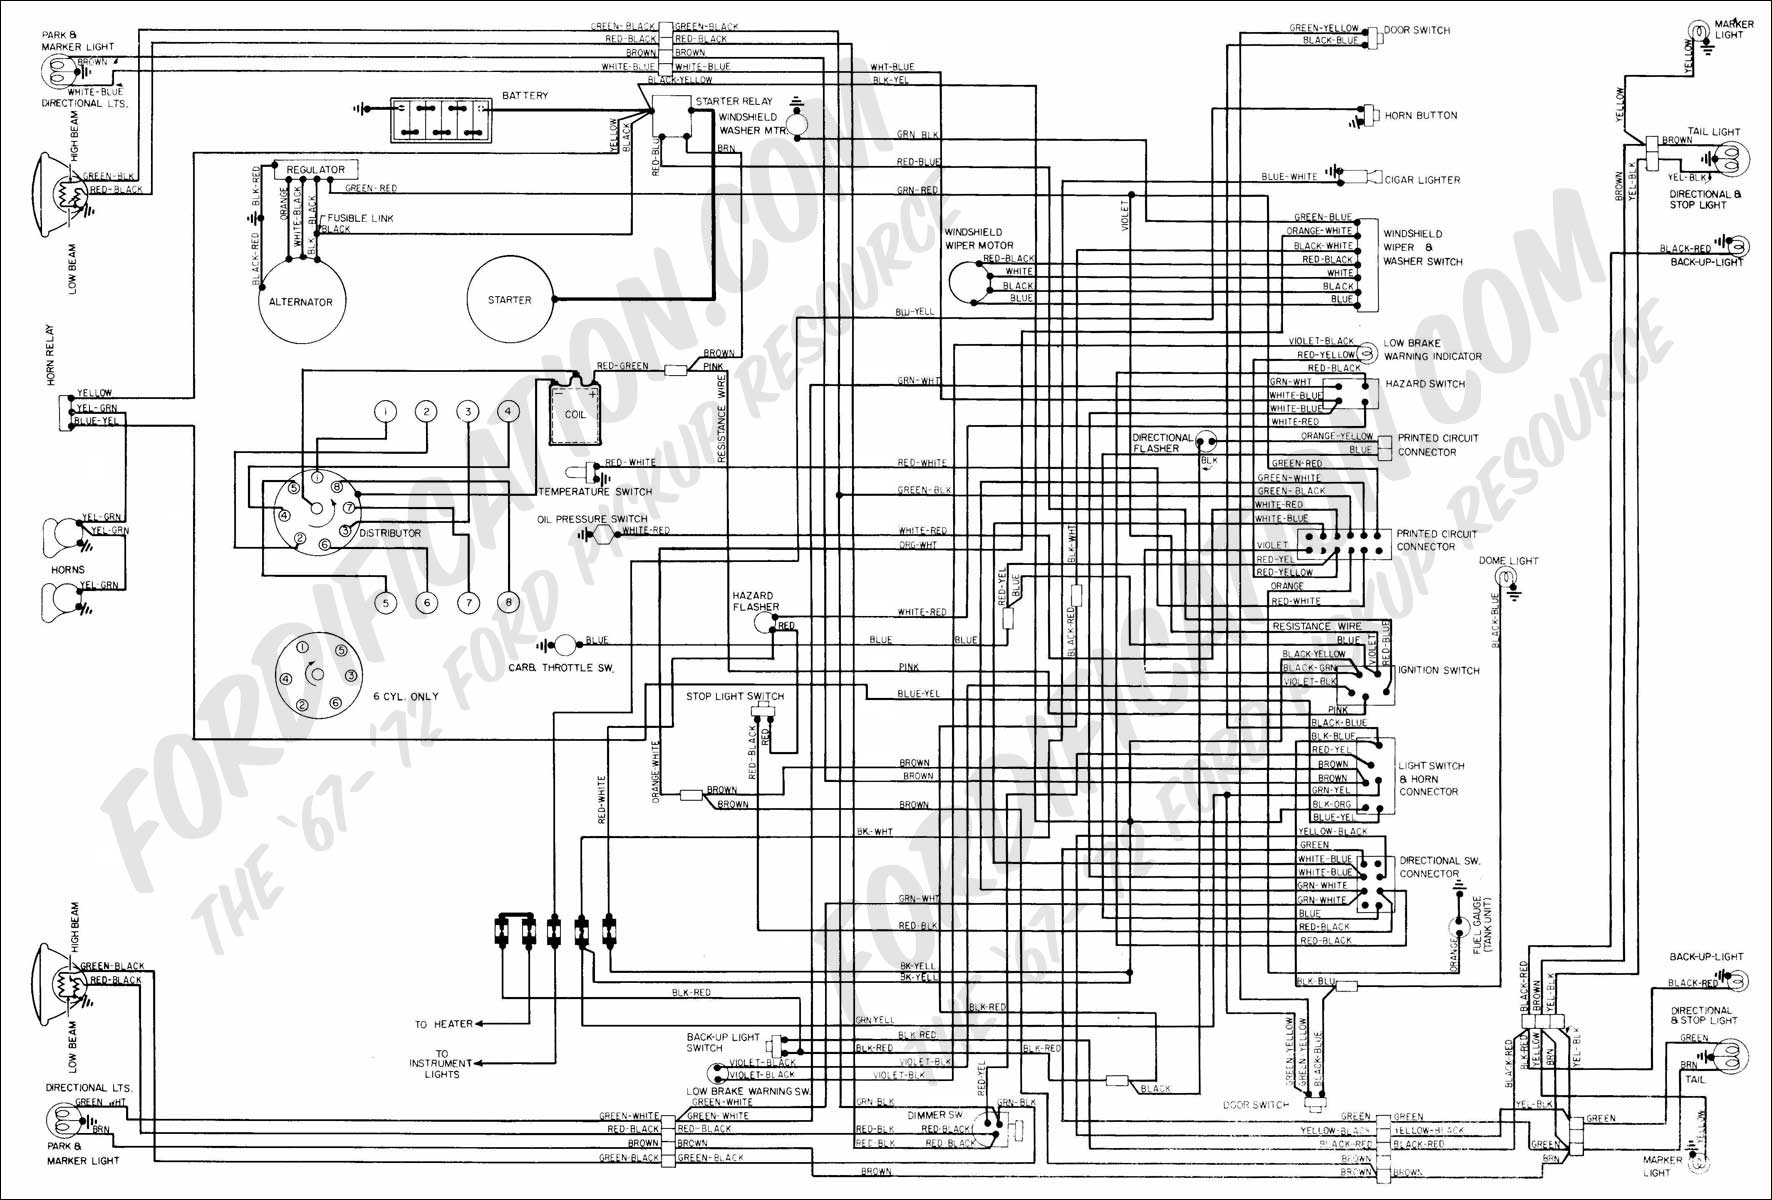 2001 mustang wiring diagram home office network design, Wiring diagram